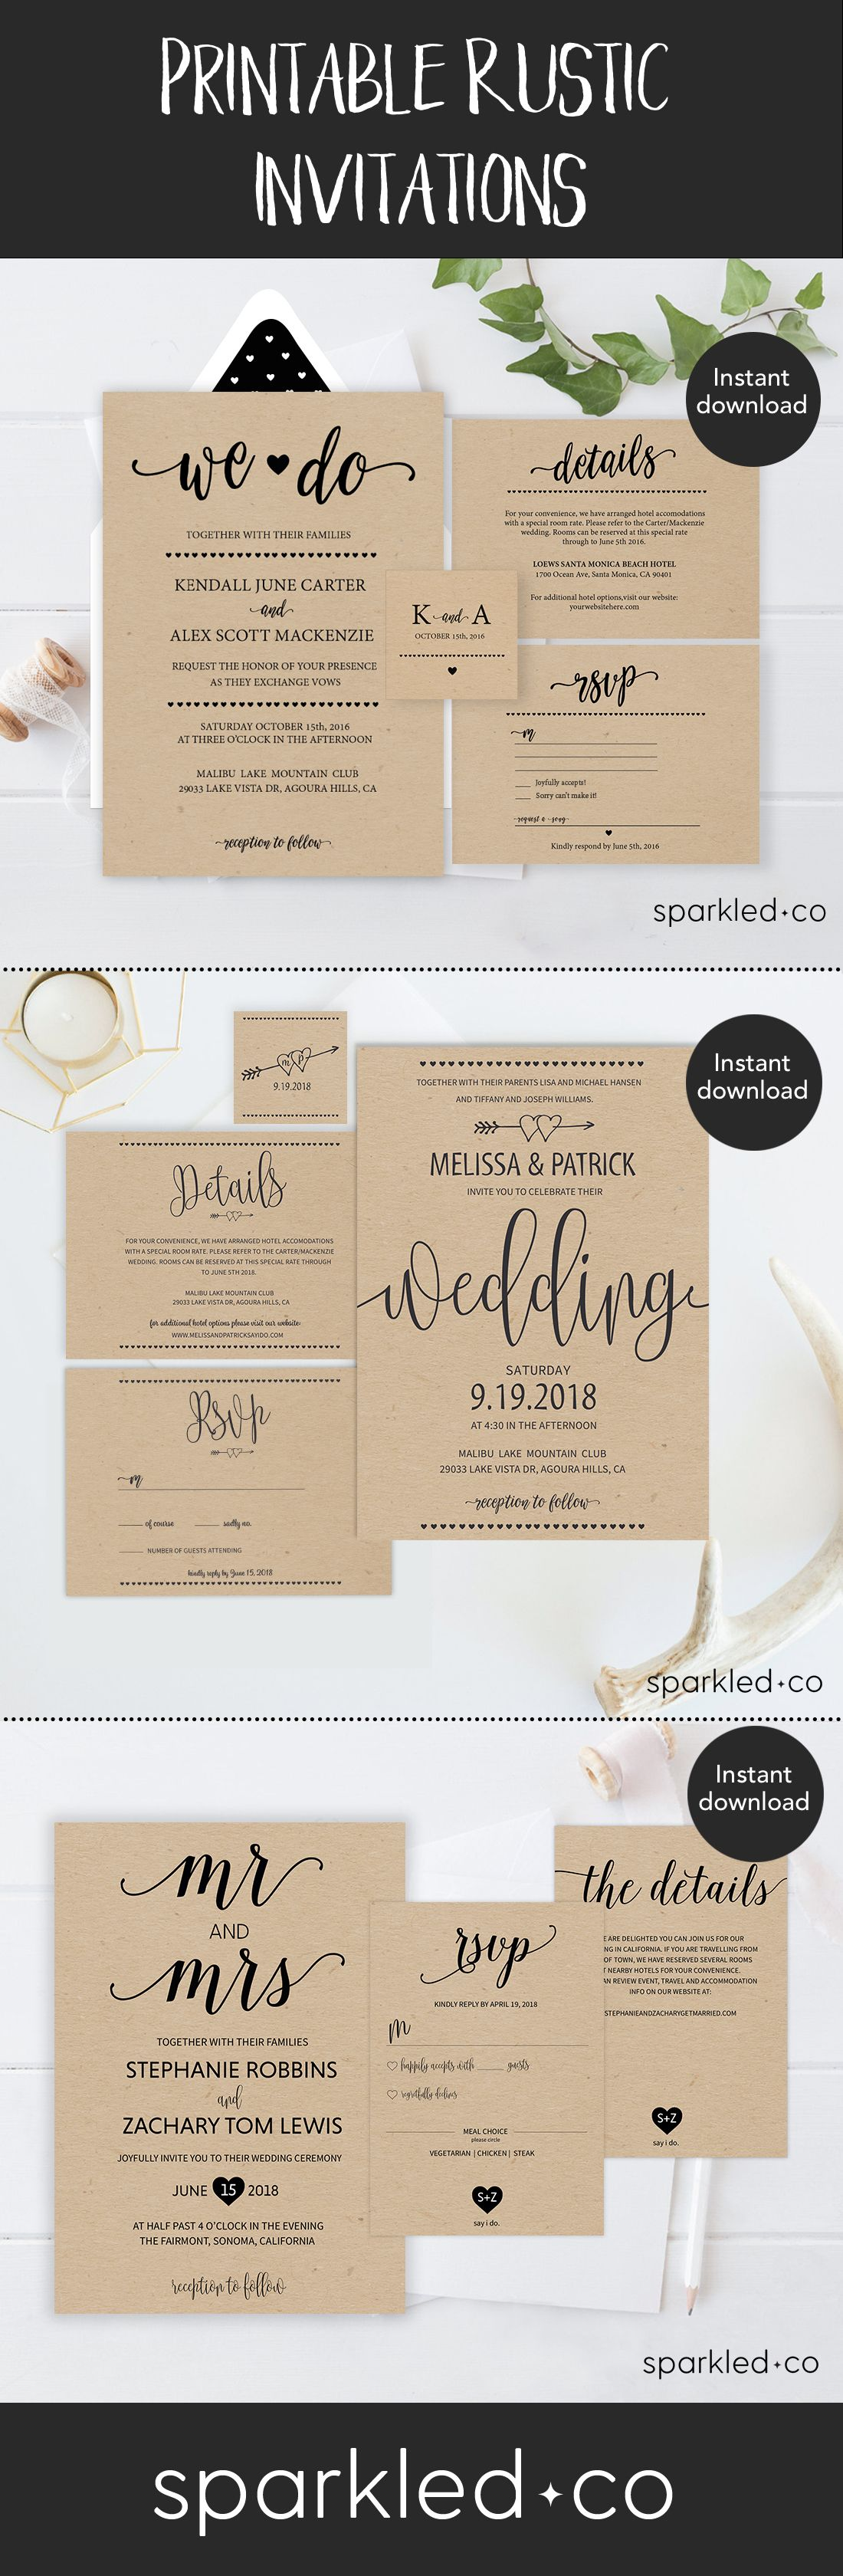 second wedding invitations wording%0A    Popular Wedding Invitation Wording  u     DIY Templates Ideas   Verses   Template and Weddings